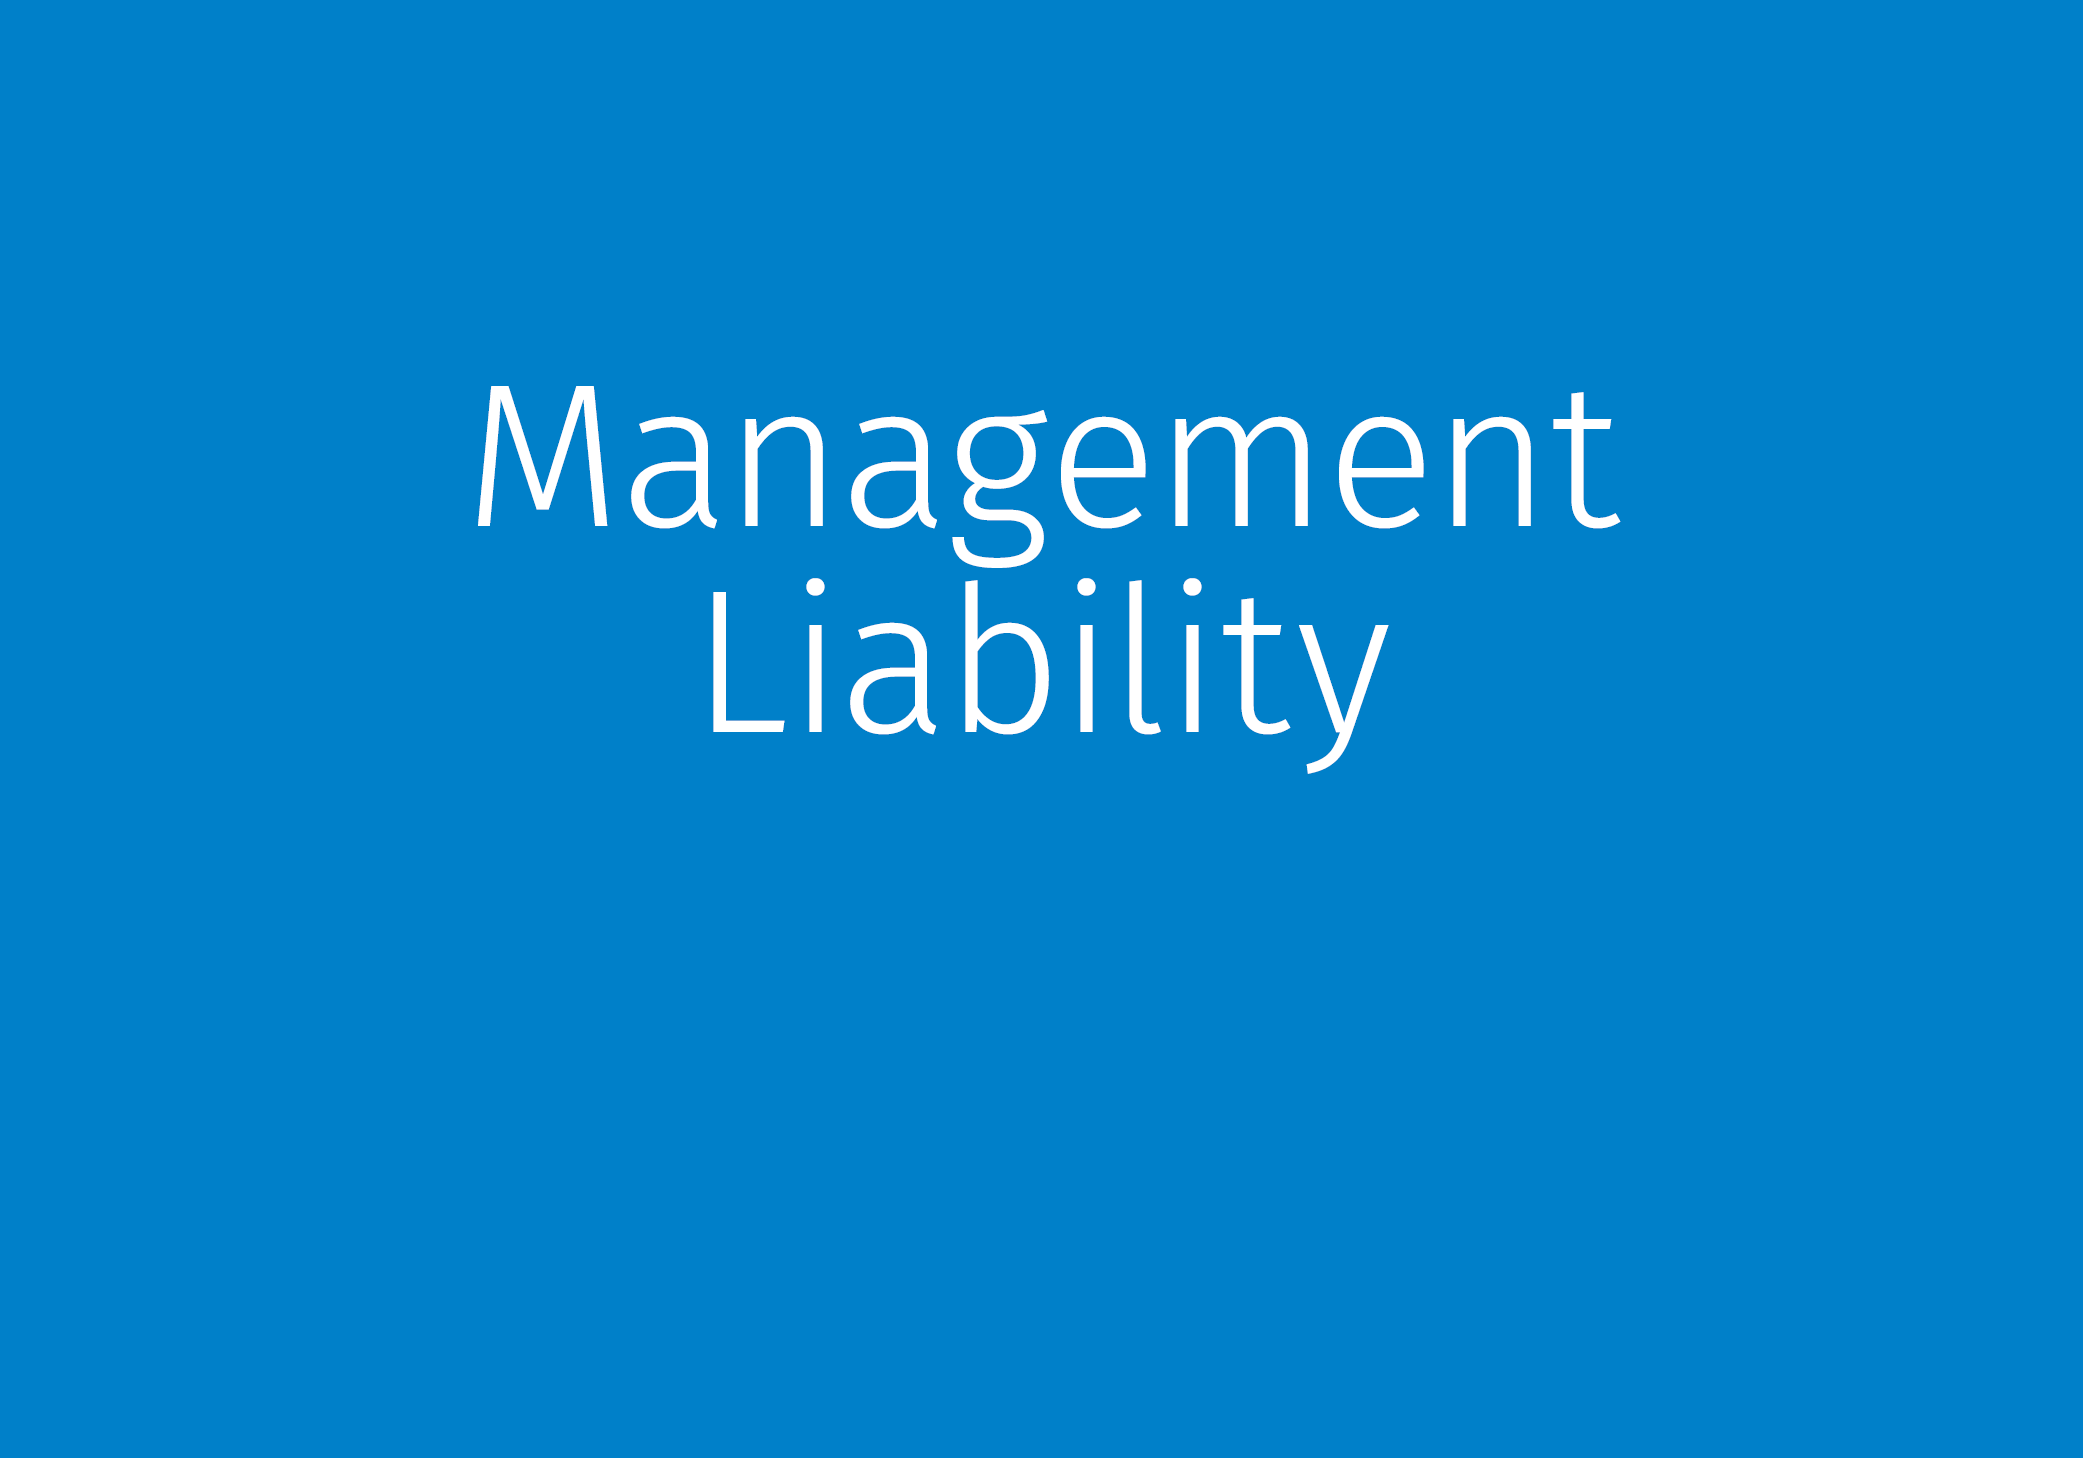 Management Liability Product Offerings